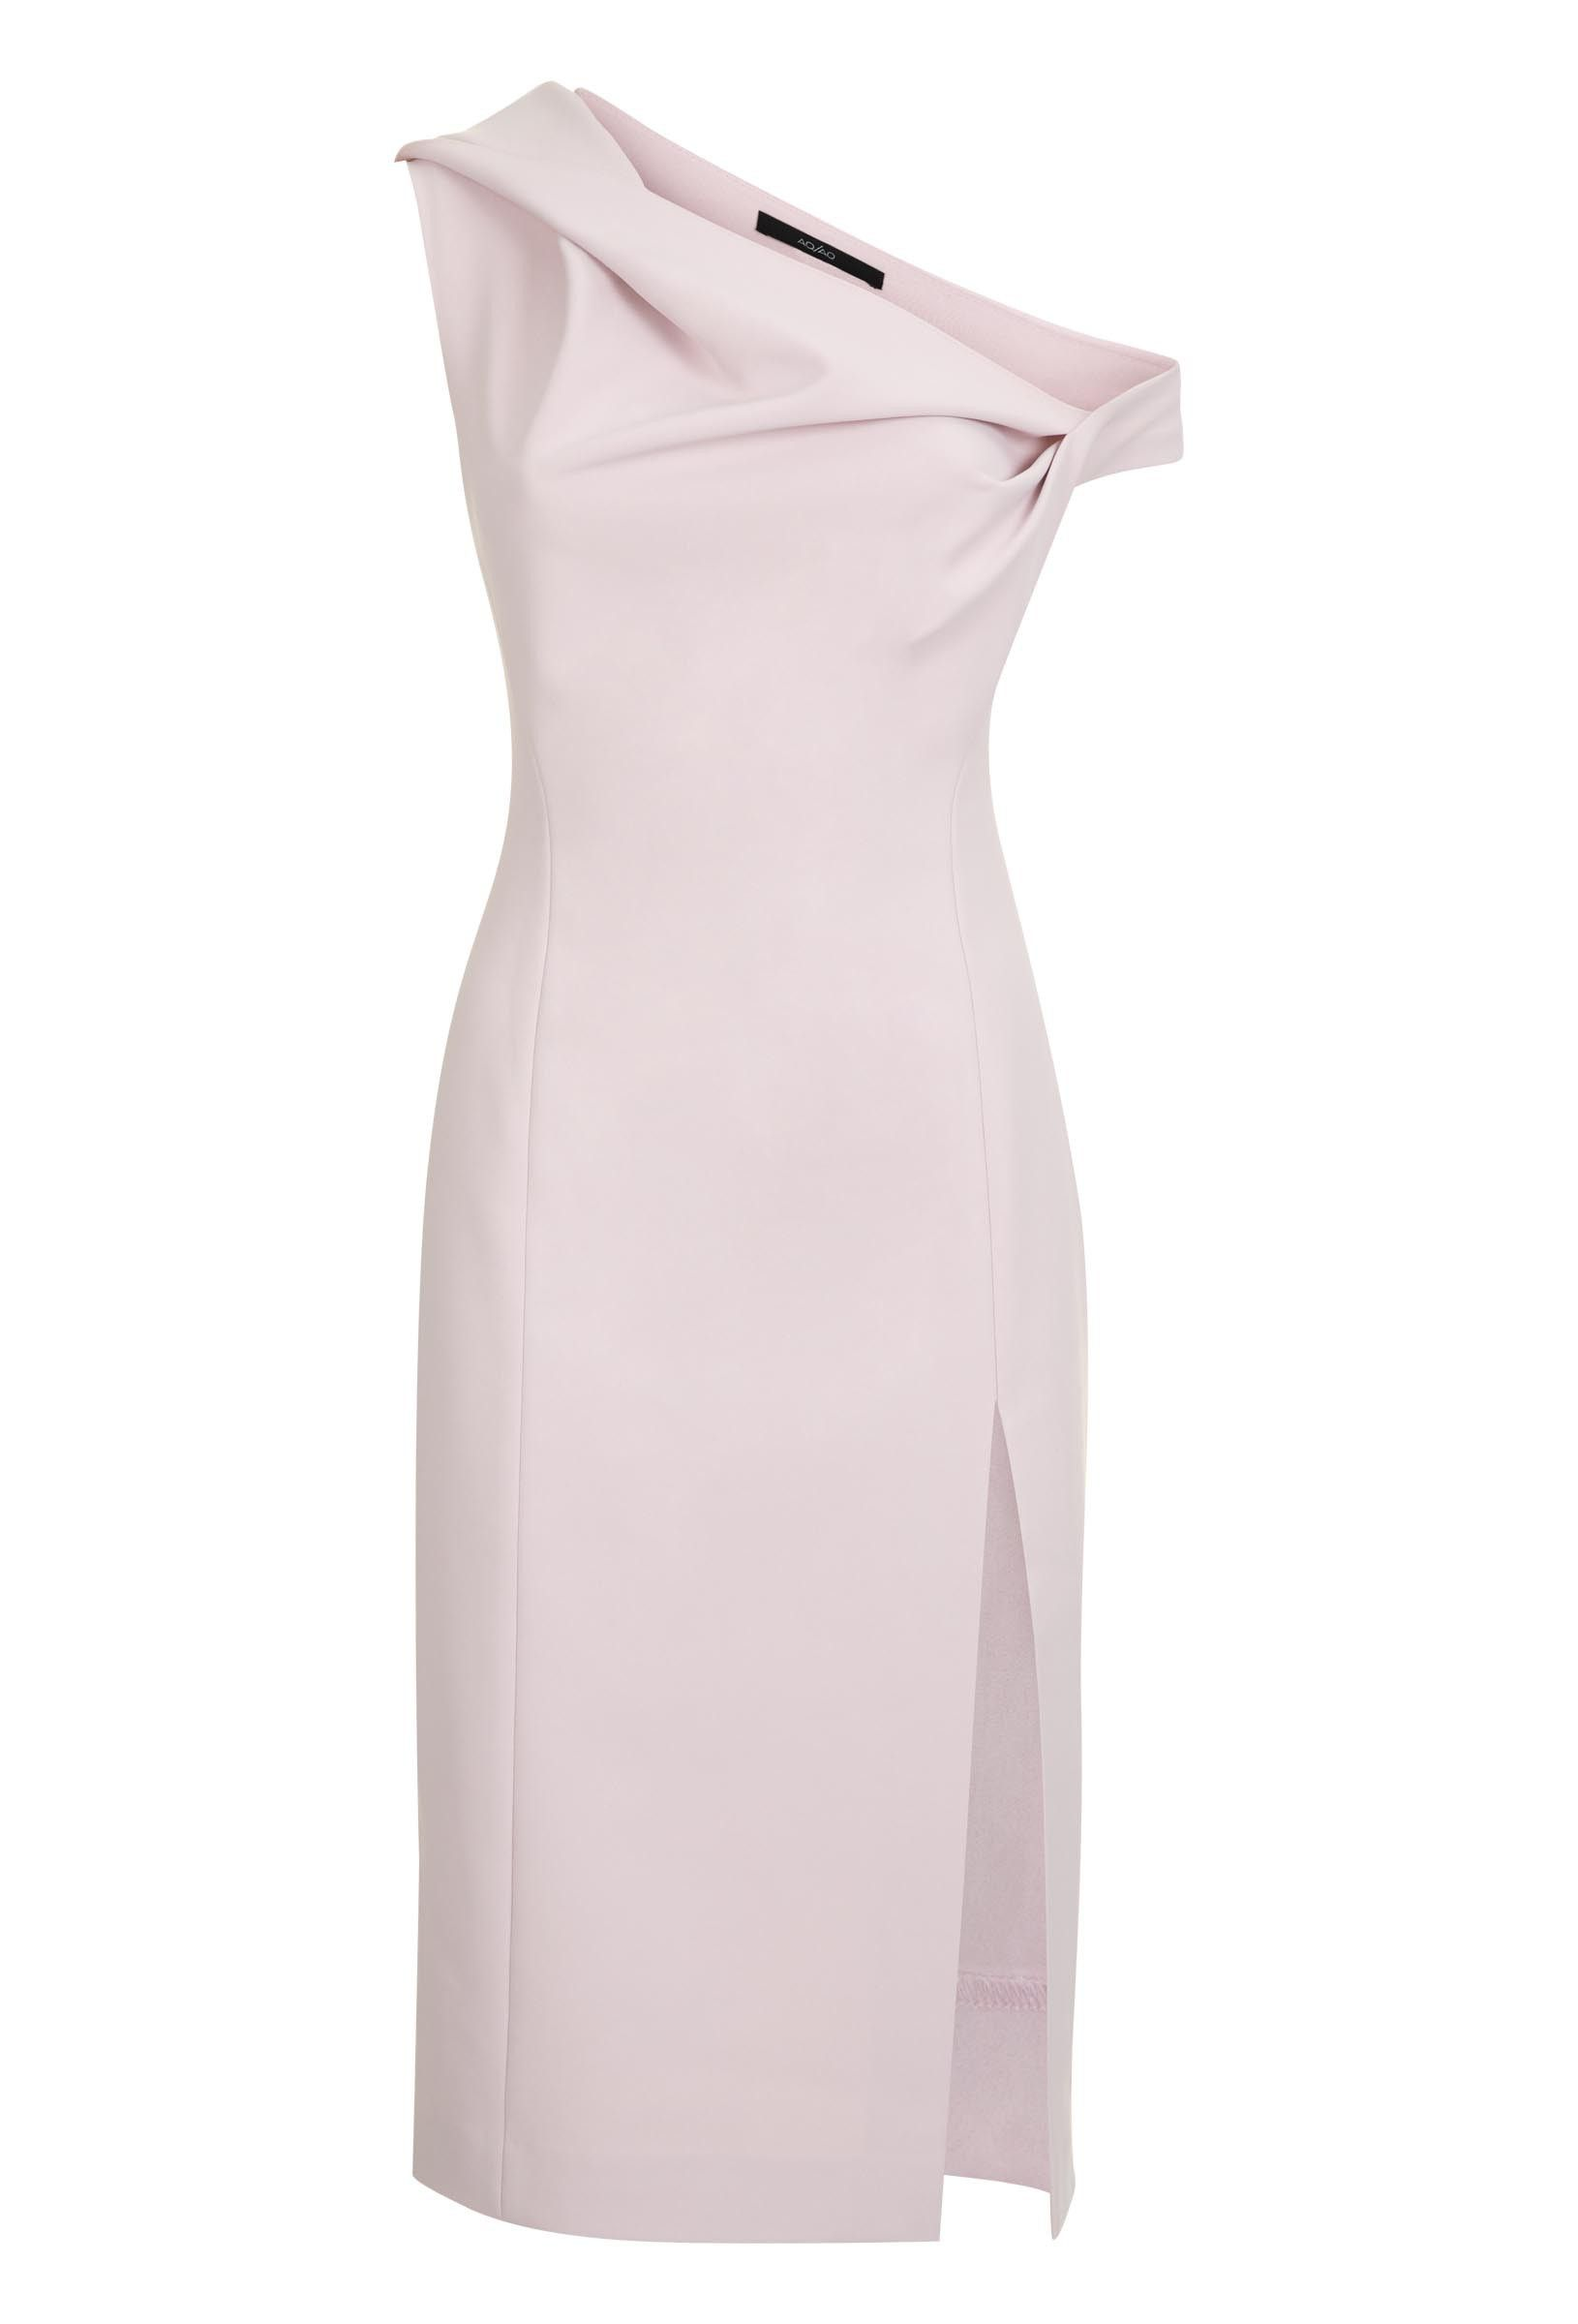 Didion Structured Knee Length Dress Pale Lilac Knee Length Dress Dresses Fitted Midi Dress [ 2400 x 1630 Pixel ]